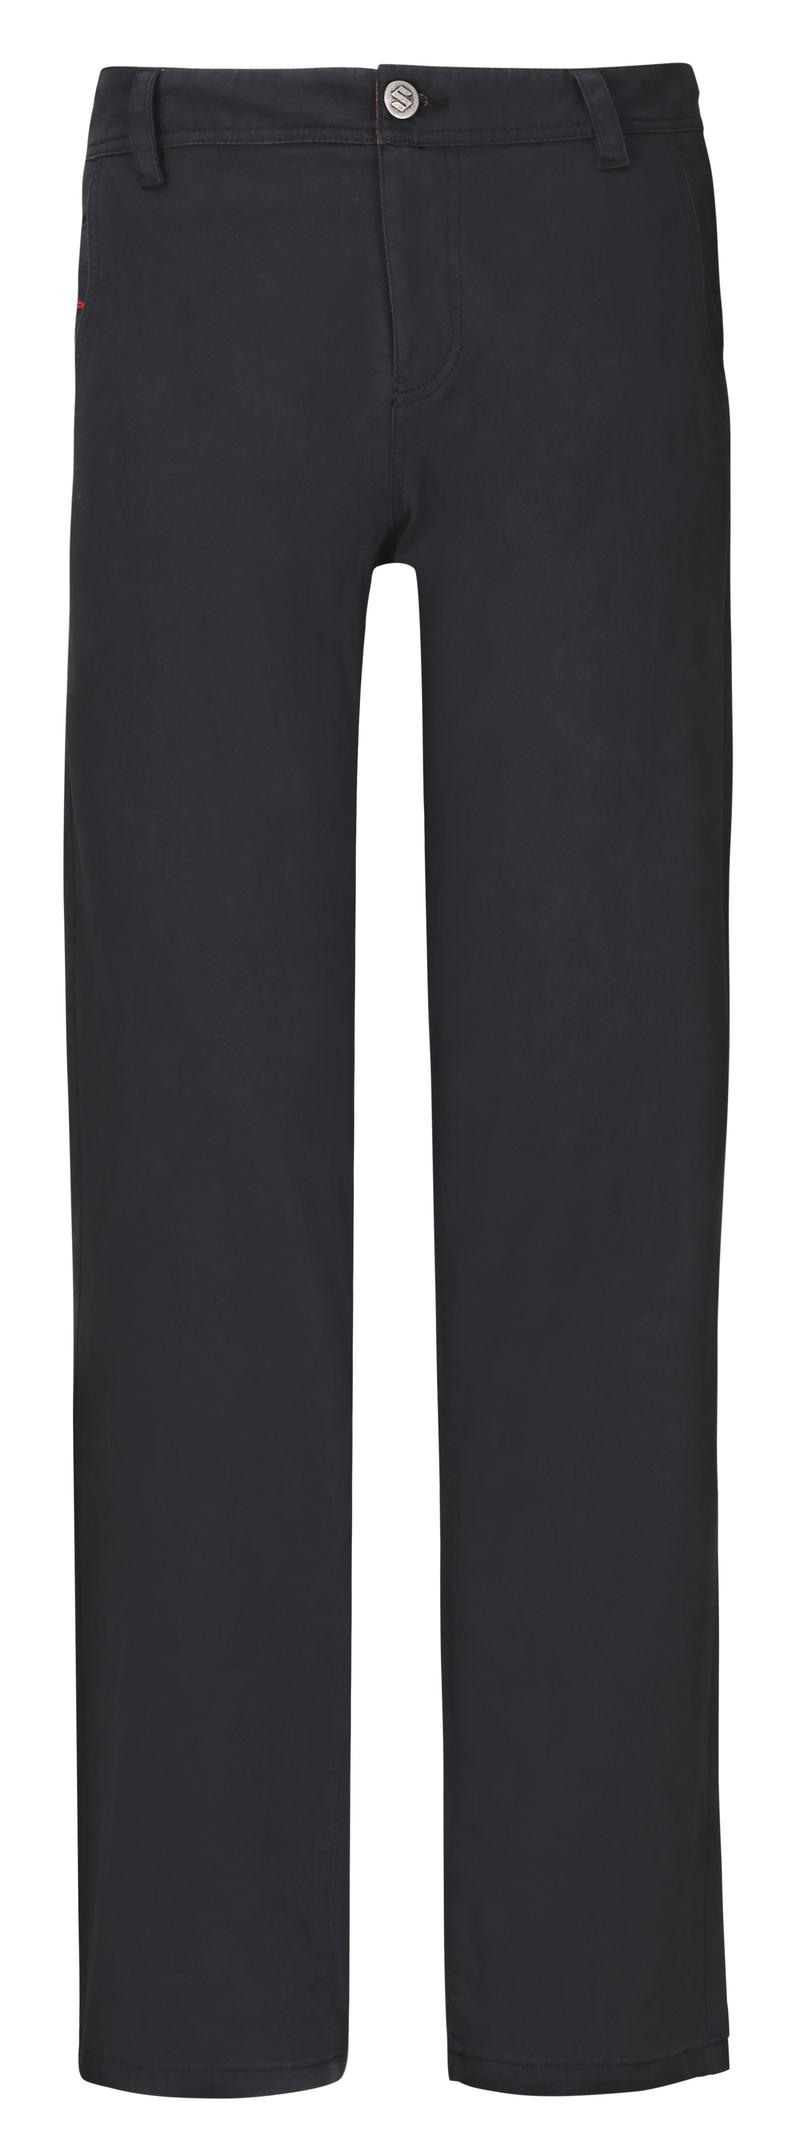 Men's Navy Chino Pants (Regular & Long)